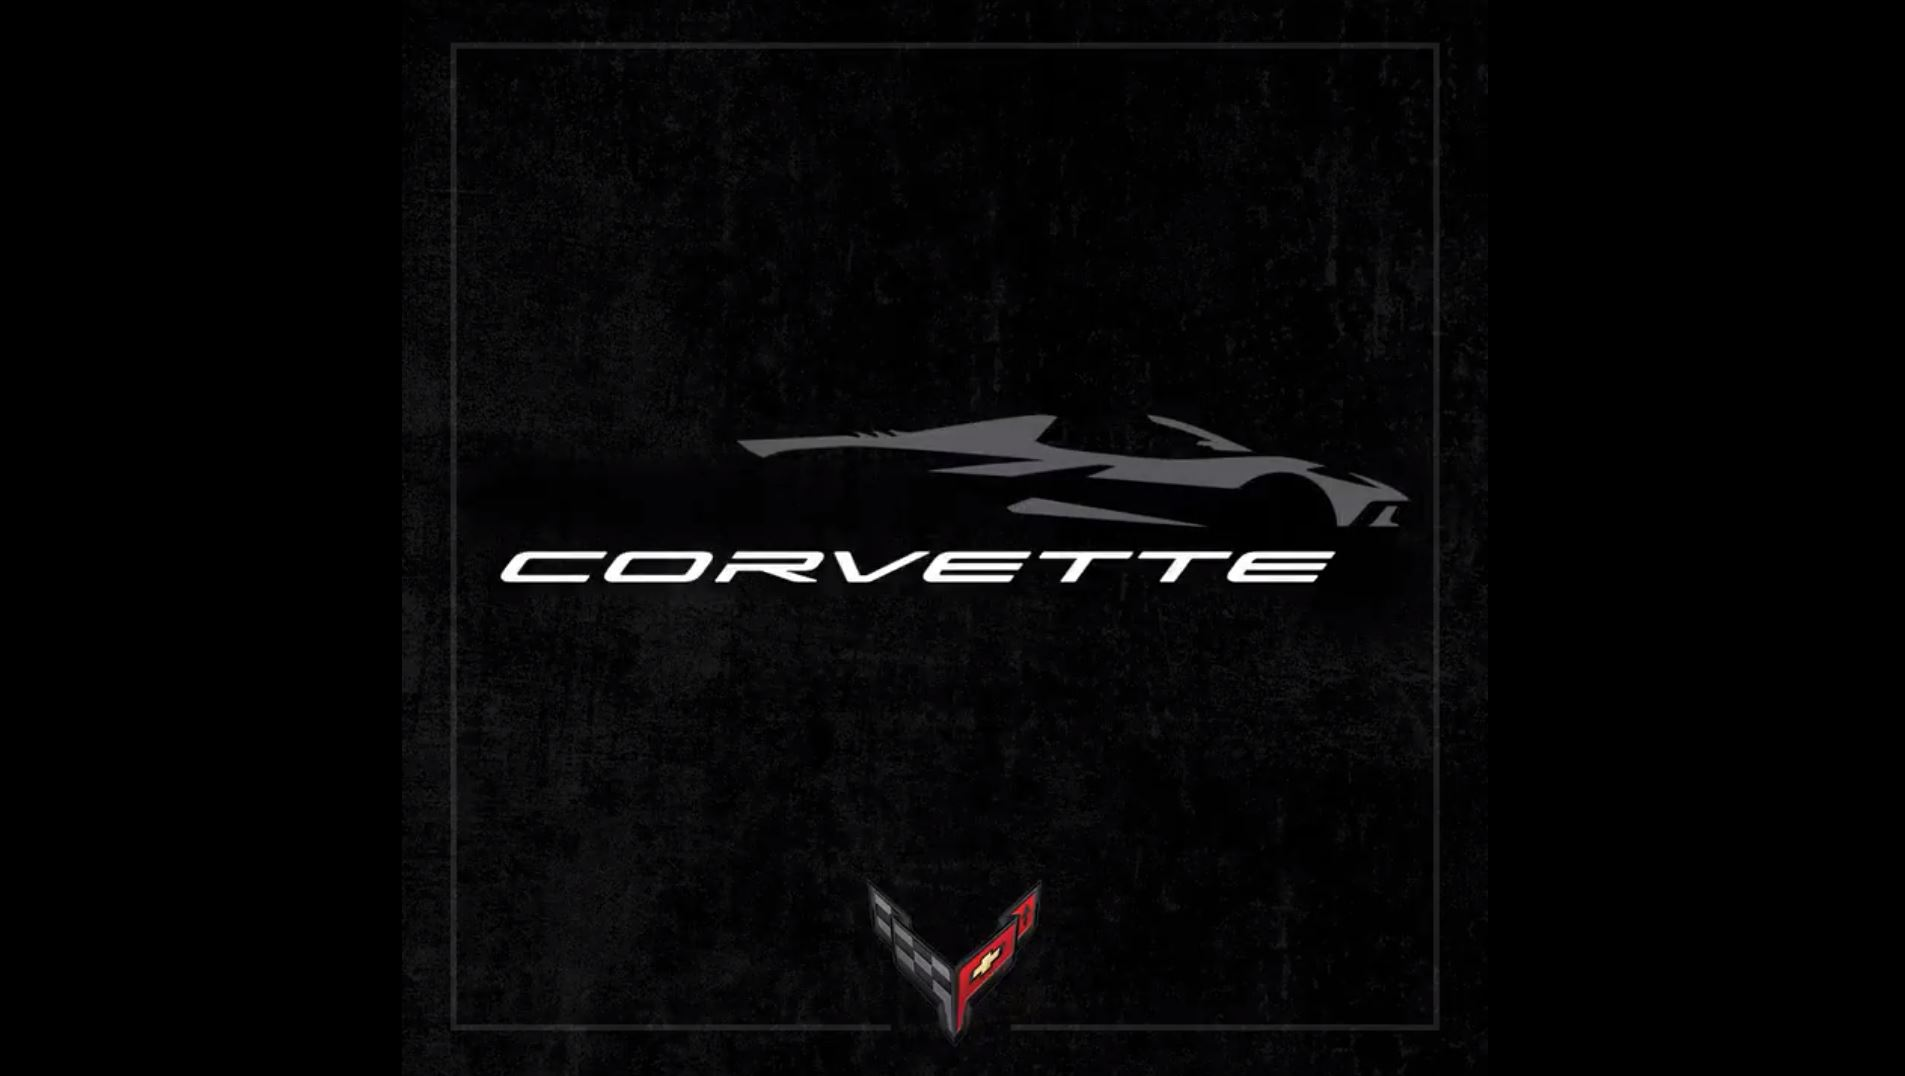 Mid-engine Chevrolet Corvette convertible makes its official debut October 2 thumbnail